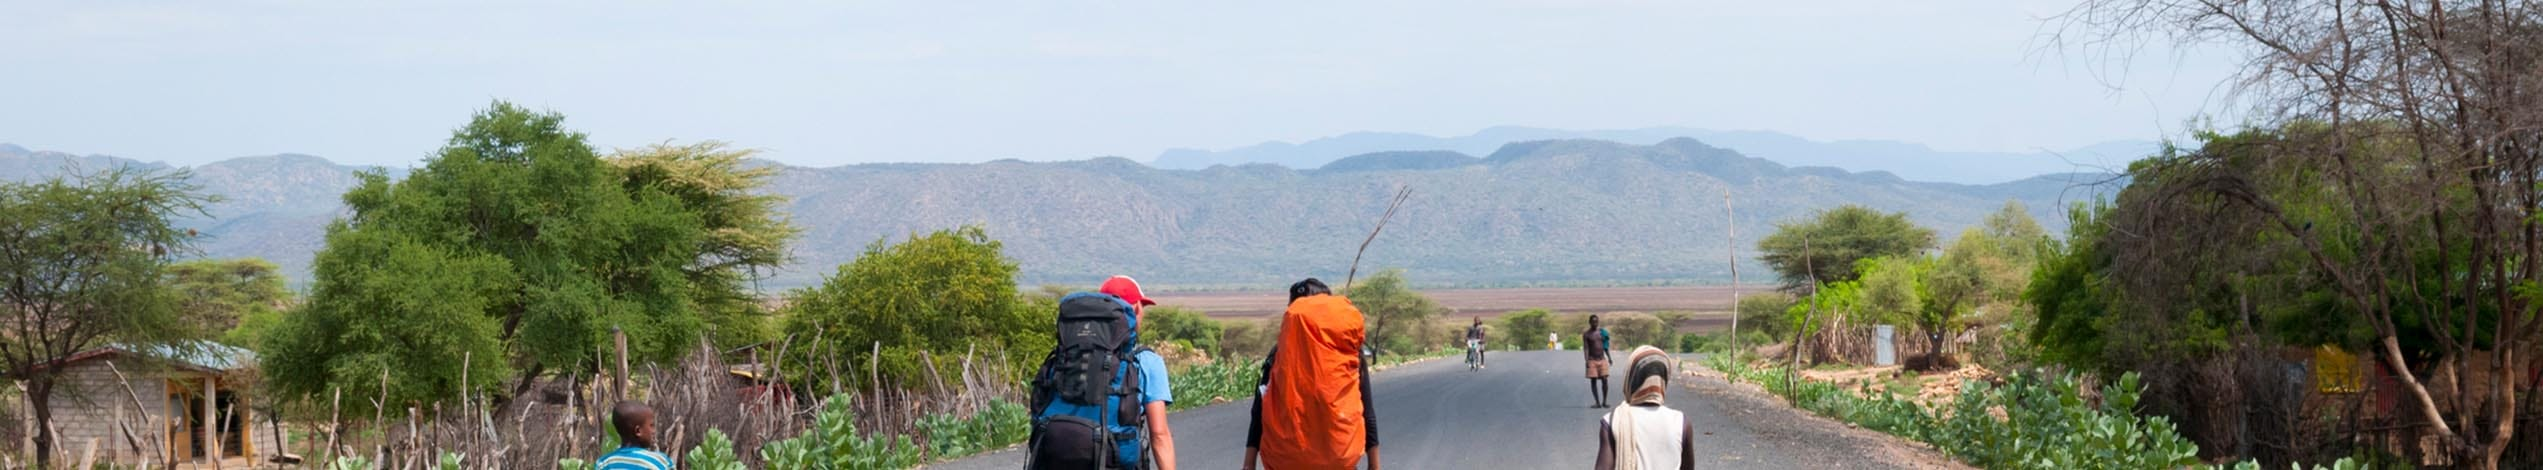 Backpacking i Uganda